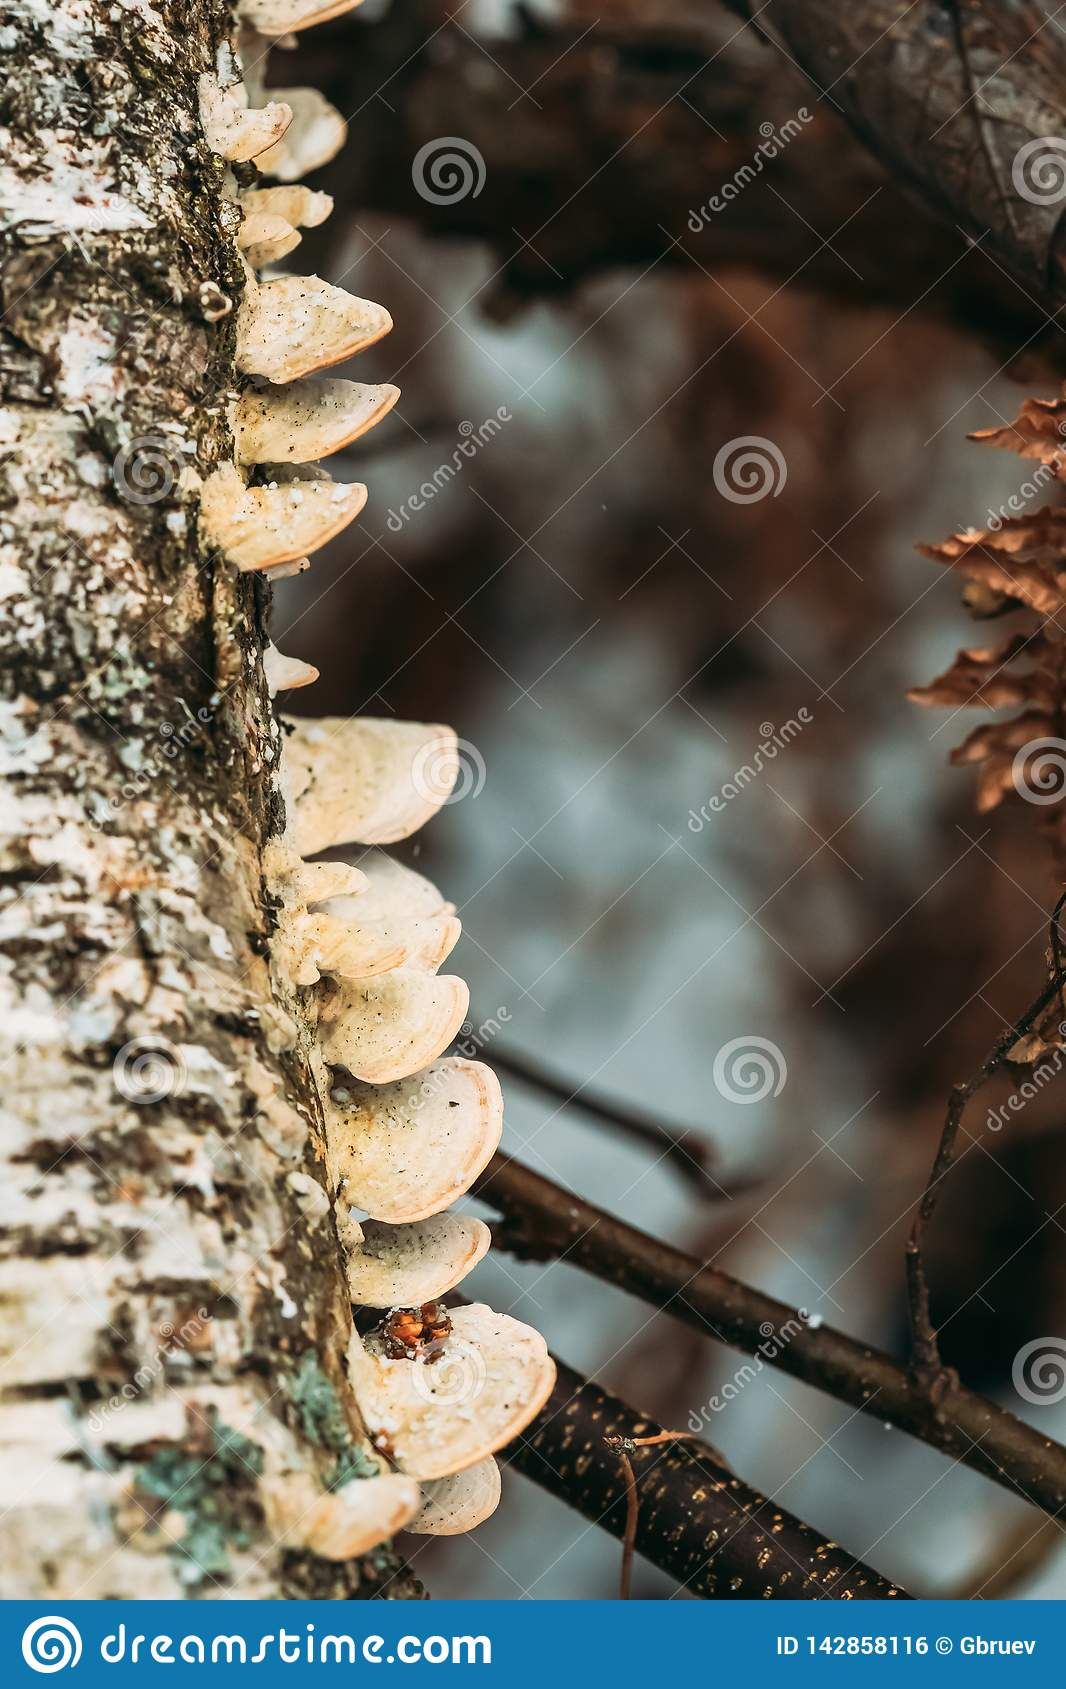 Belarus. Polypore Fungus On Tree Trunk In Autumn Rainy Day. Bracket Fungi, And Their Woody Fruiting Bodies Are Called